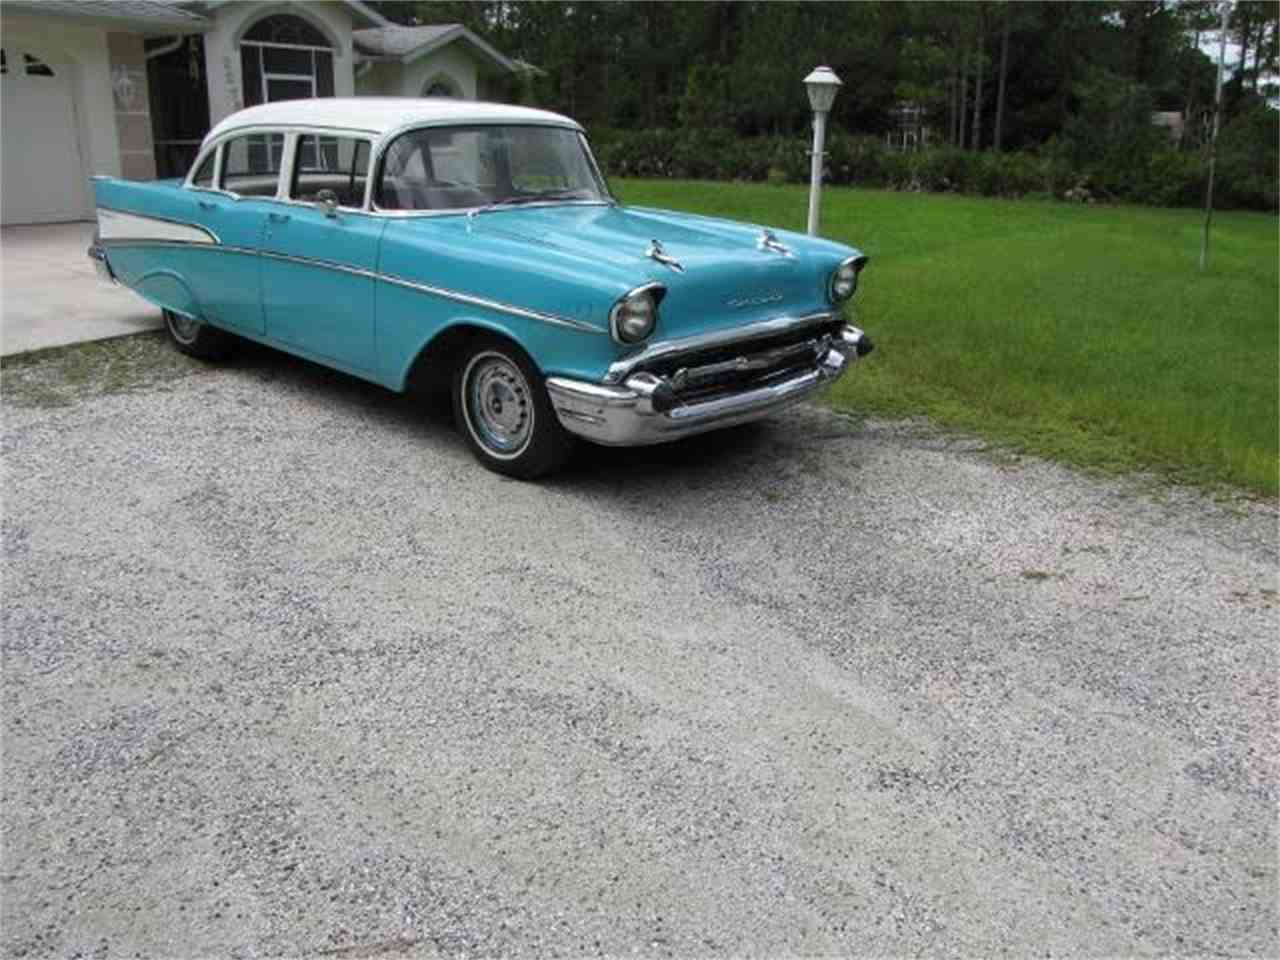 Large Picture of '57 Chevrolet Bel Air - $18,950.00 Offered by a Private Seller - JOG1